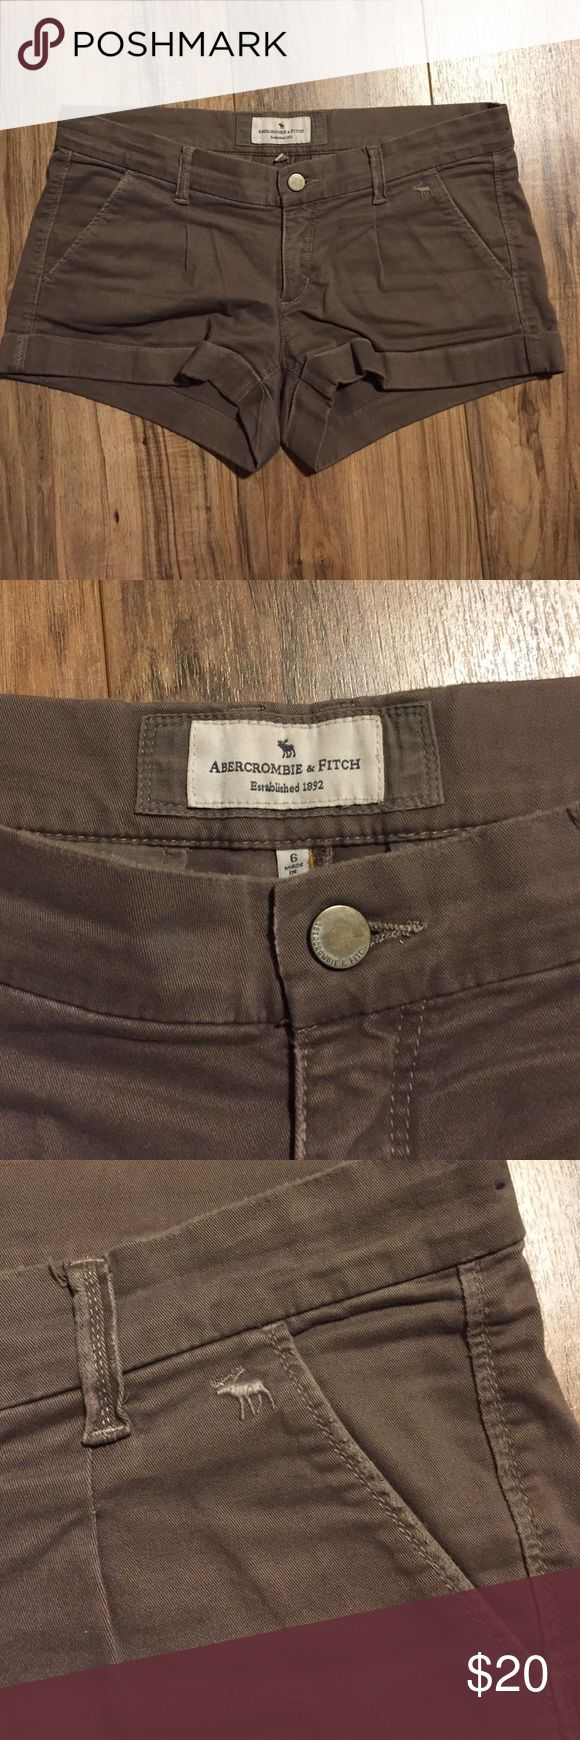 Abercrombie and Fitch shorts Soft cotton short. Can be dressed up or down. Vintage. Pretty coco color Abercrombie & Fitch Shorts Jean Shorts